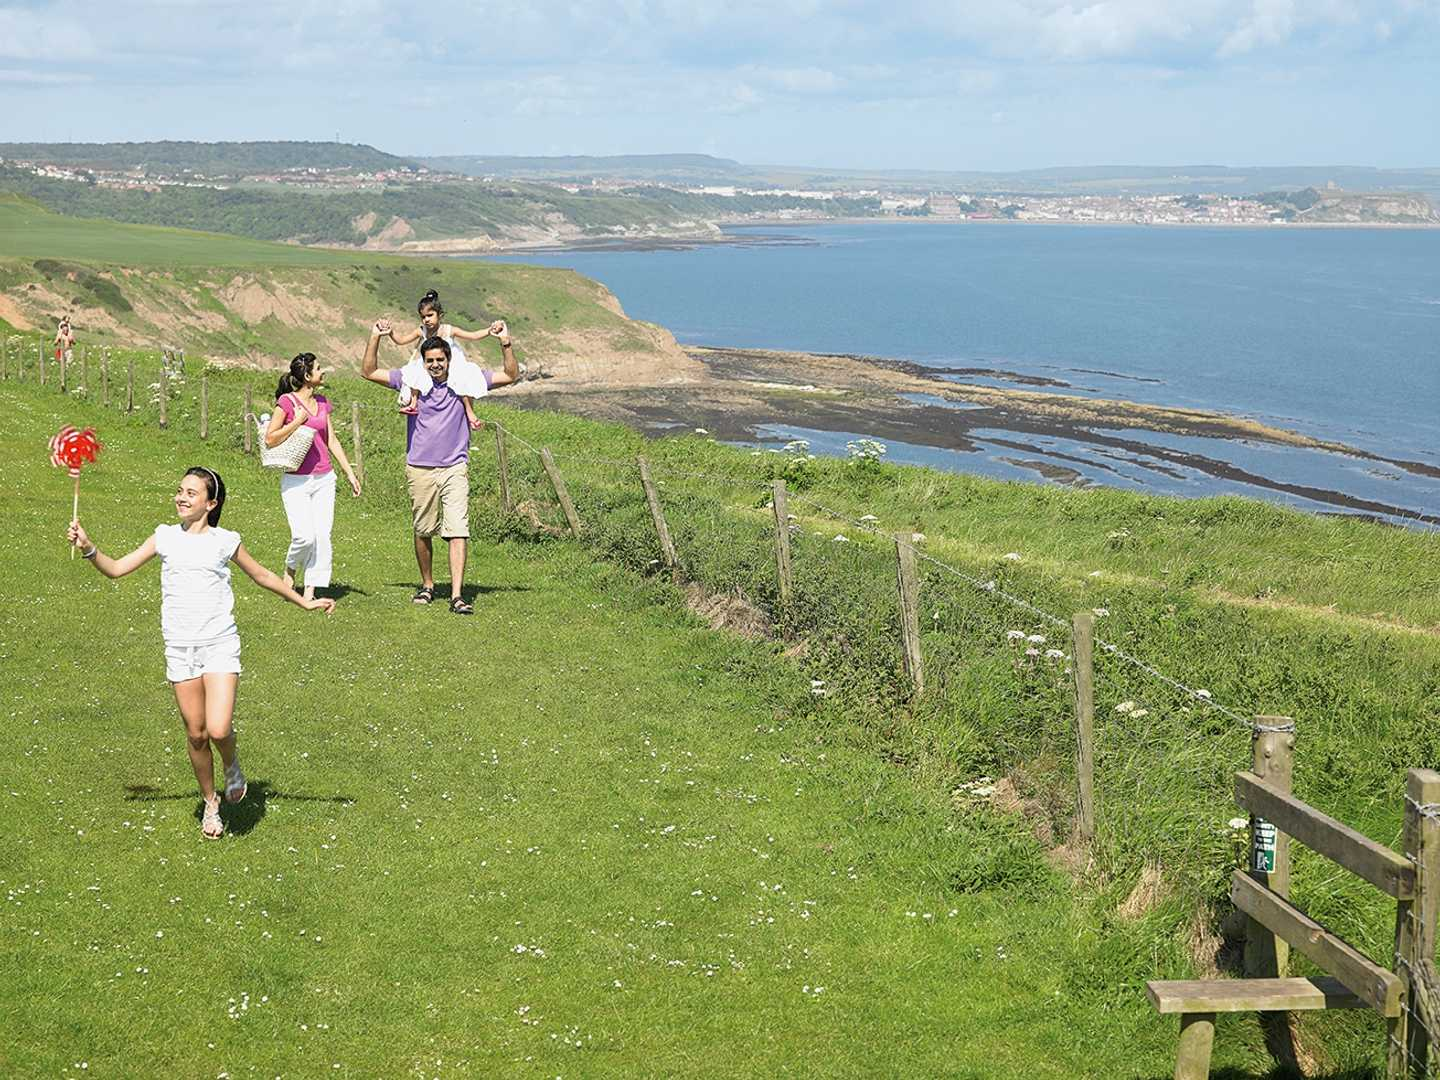 A family enjoying the clifftops at Blue Dolphin